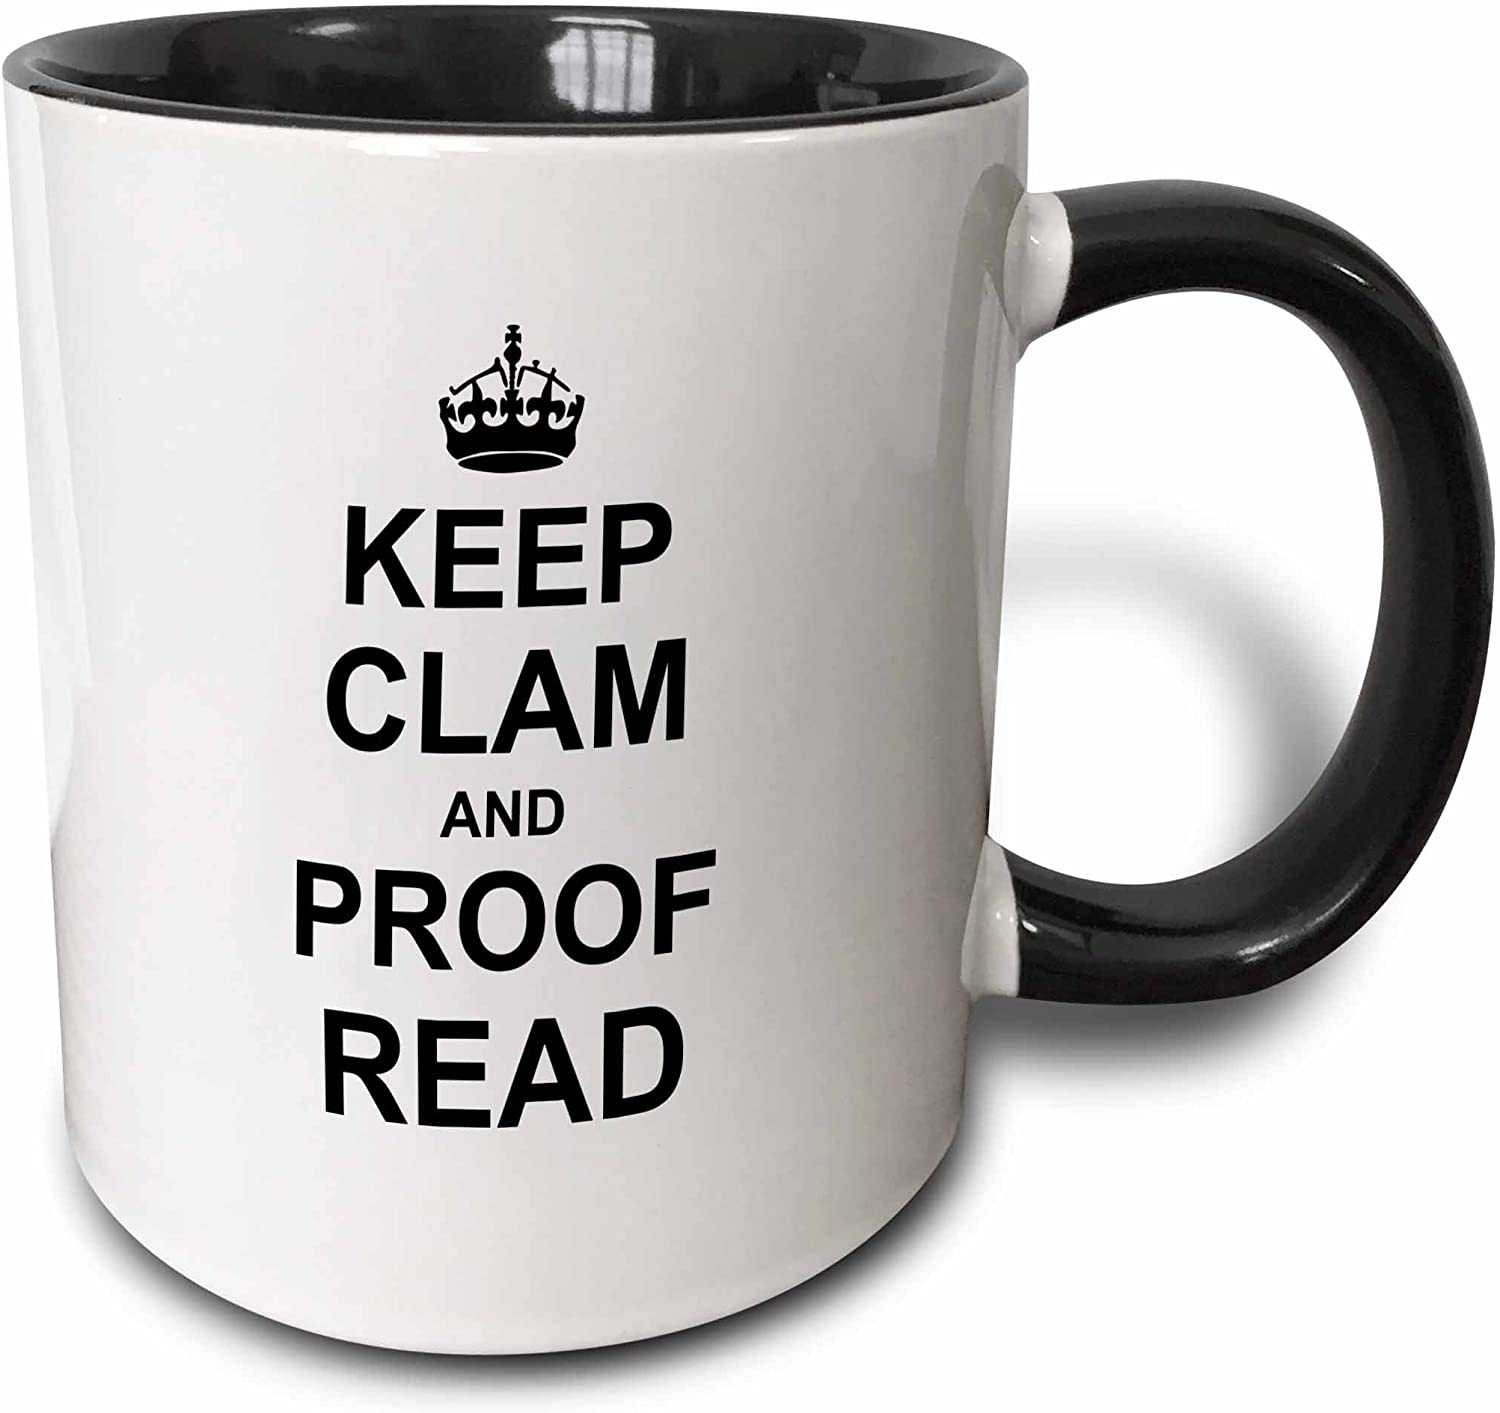 Amazon Com 3drose Keep Clam And Proof Read Funny Proofread Reader Writer Editor Gifts Mug 11 Oz Black Kitchen Dining